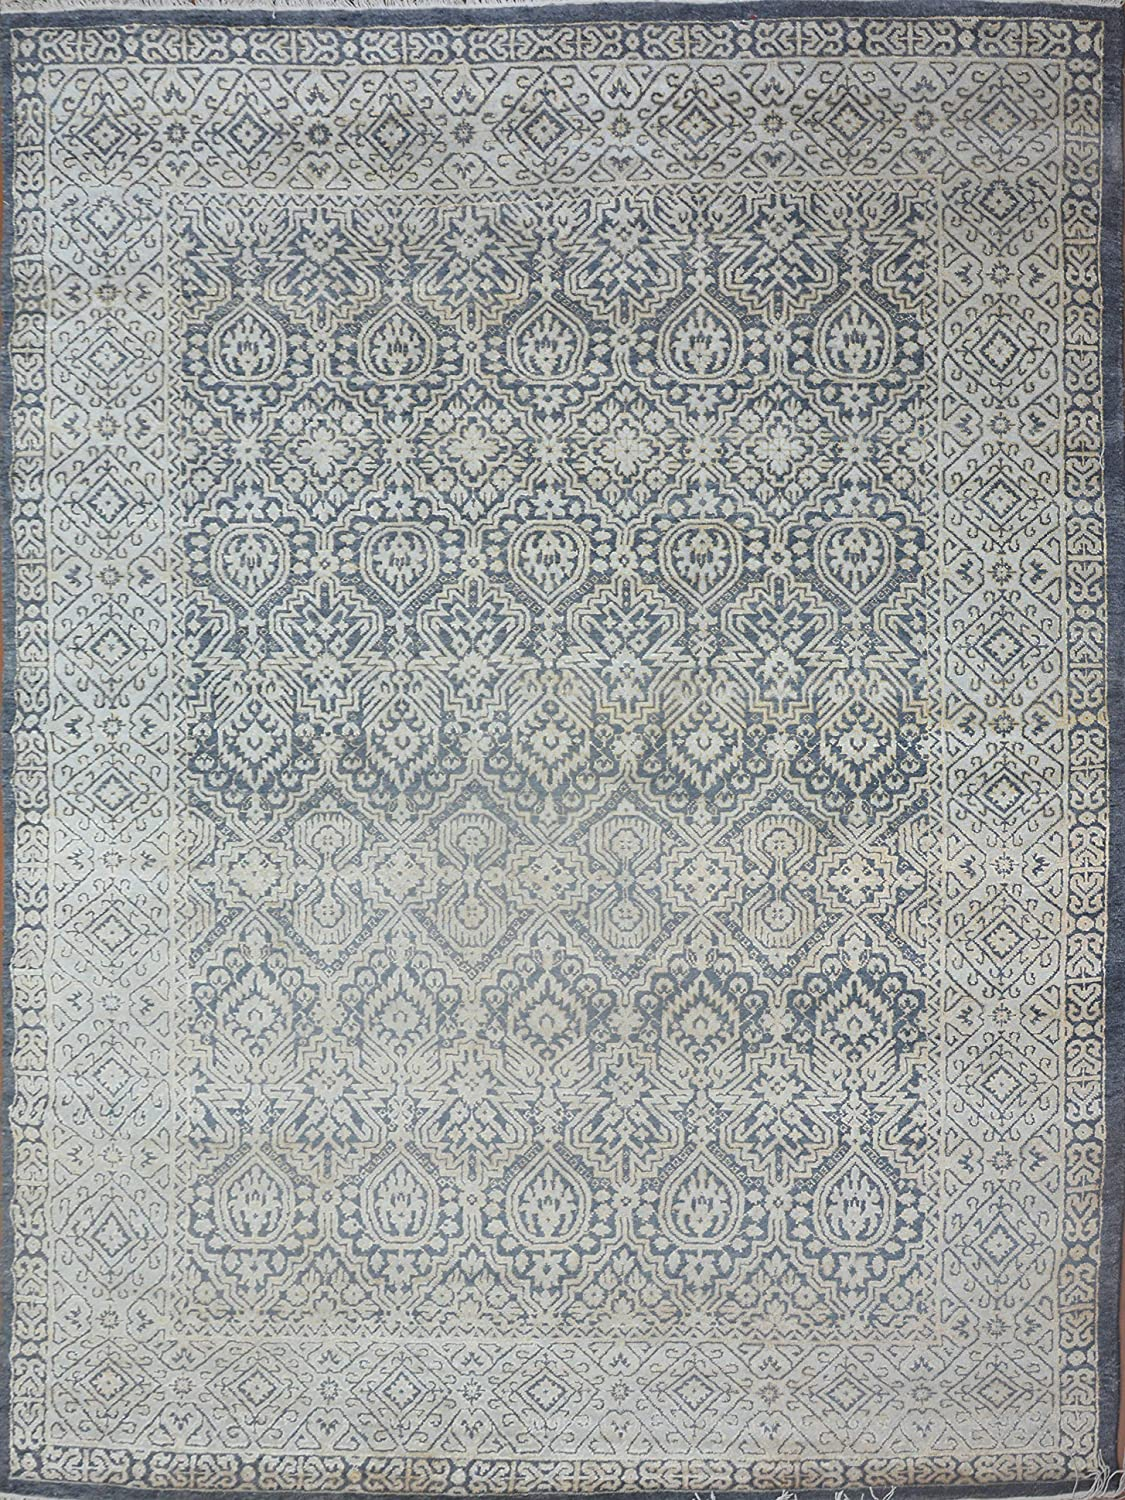 BLACK KNIGHT RUGS Modern Luxury Hand Max 62% OFF Wool Rug supreme 9'6X1 Area Knotted